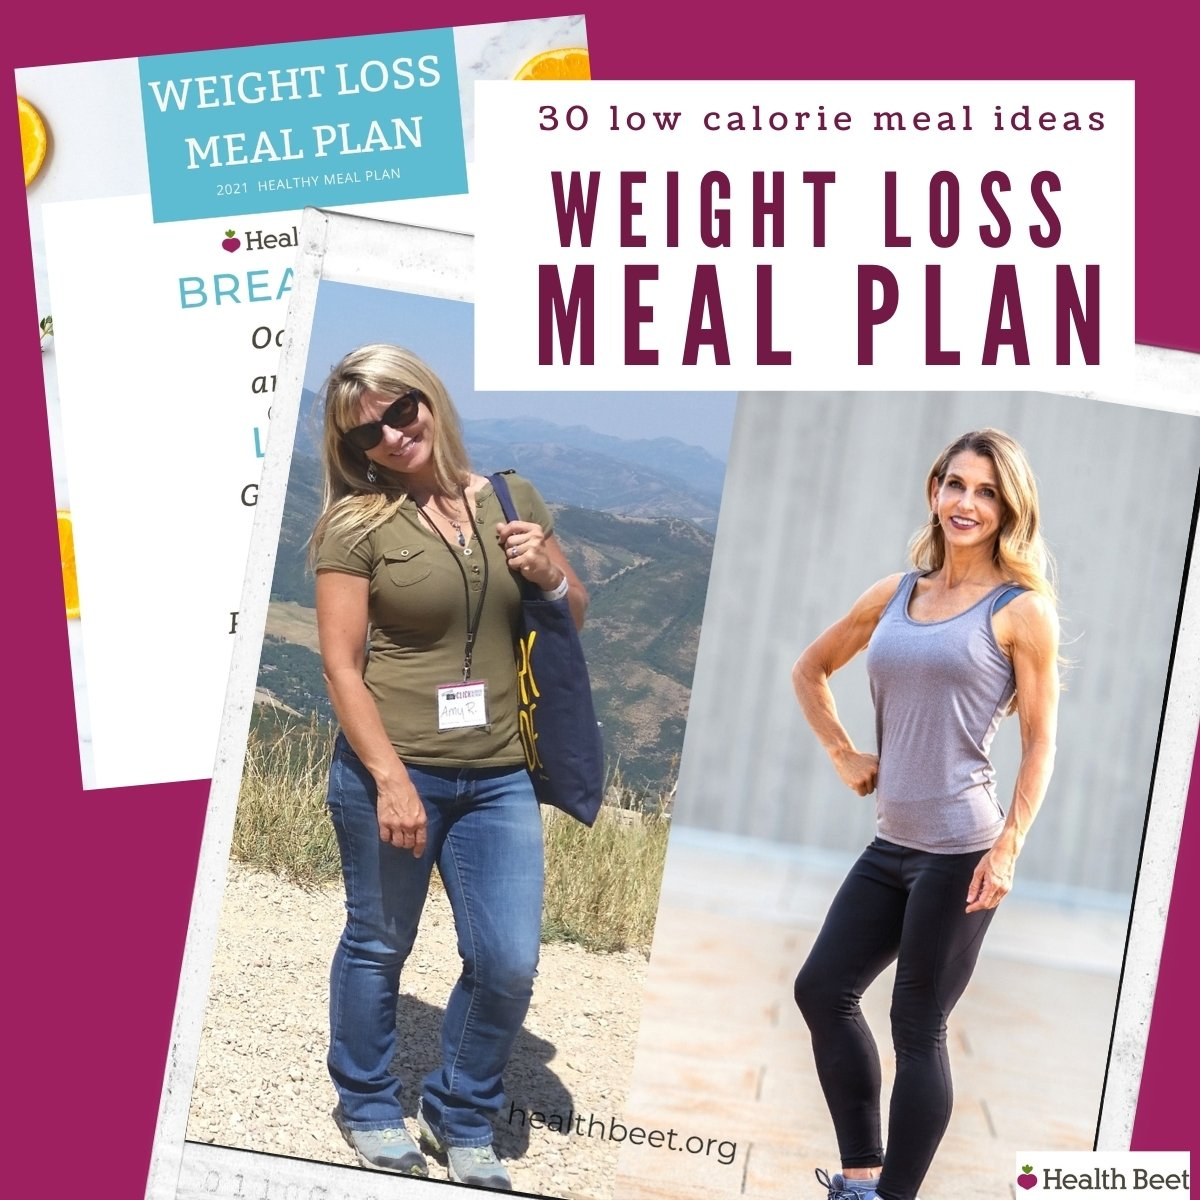 30 Low Calorie Meal Ideas and the Meal Plan Template